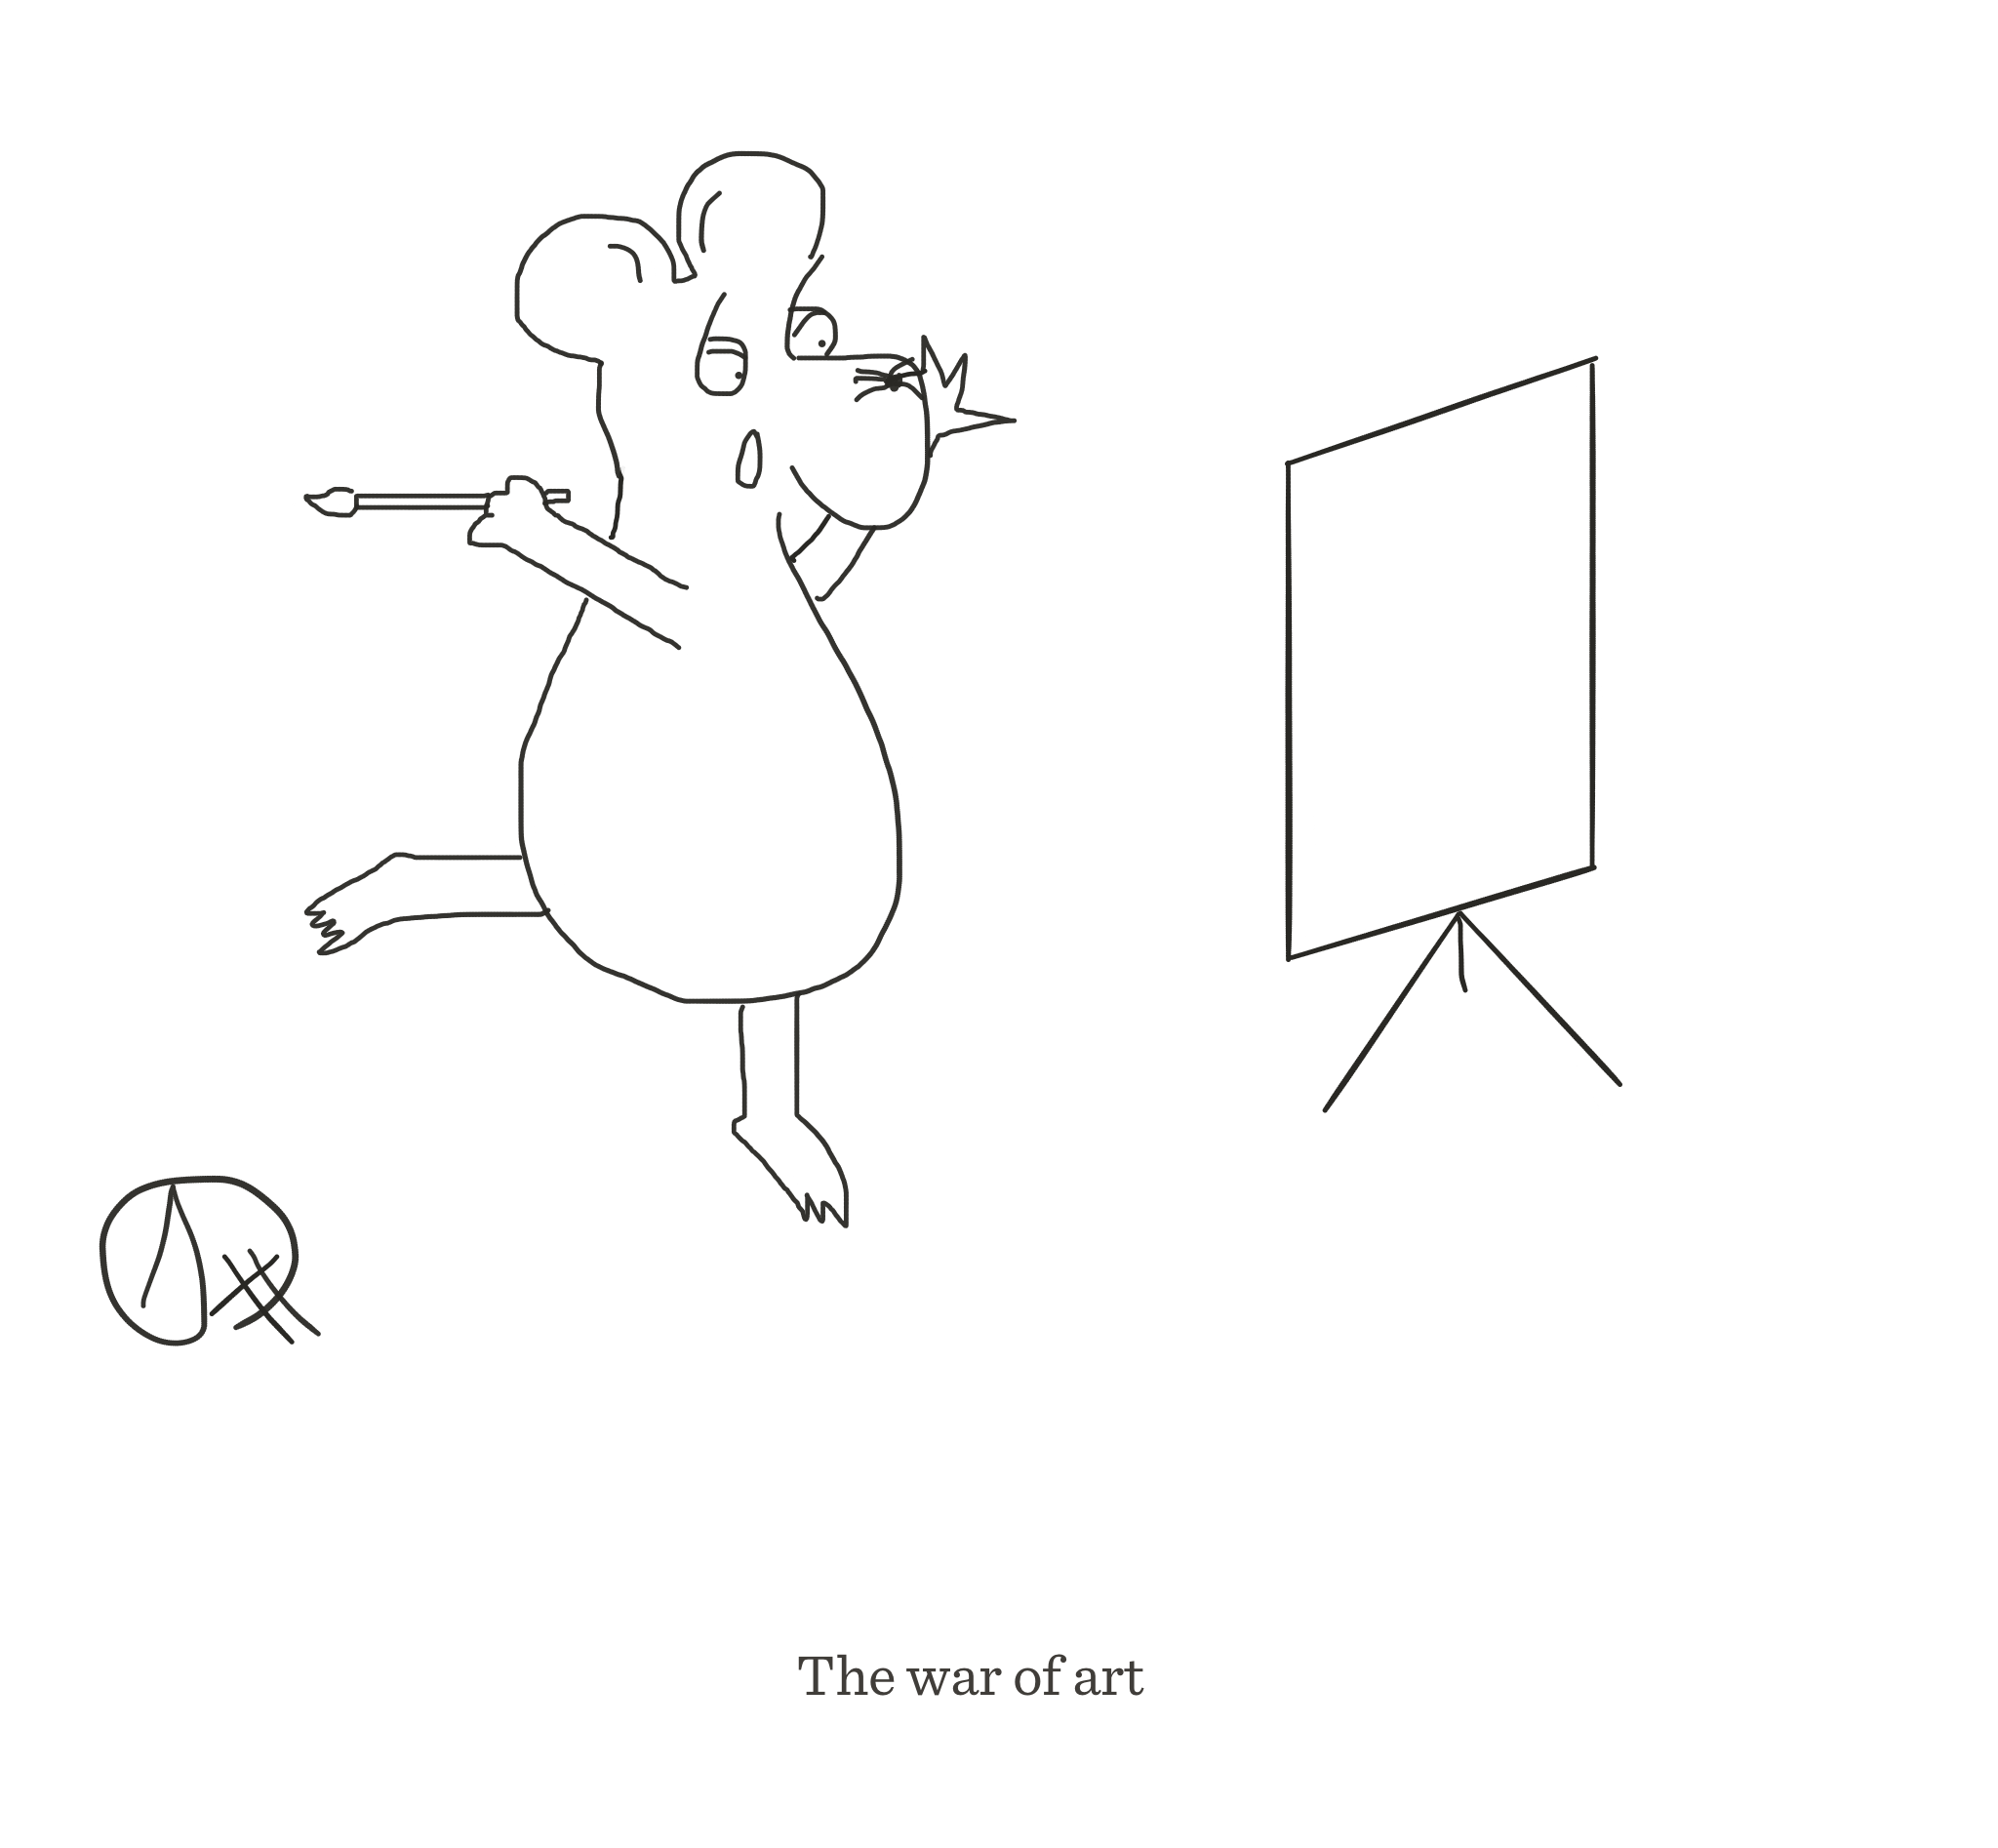 The war of art, The Happy Rat cartoon